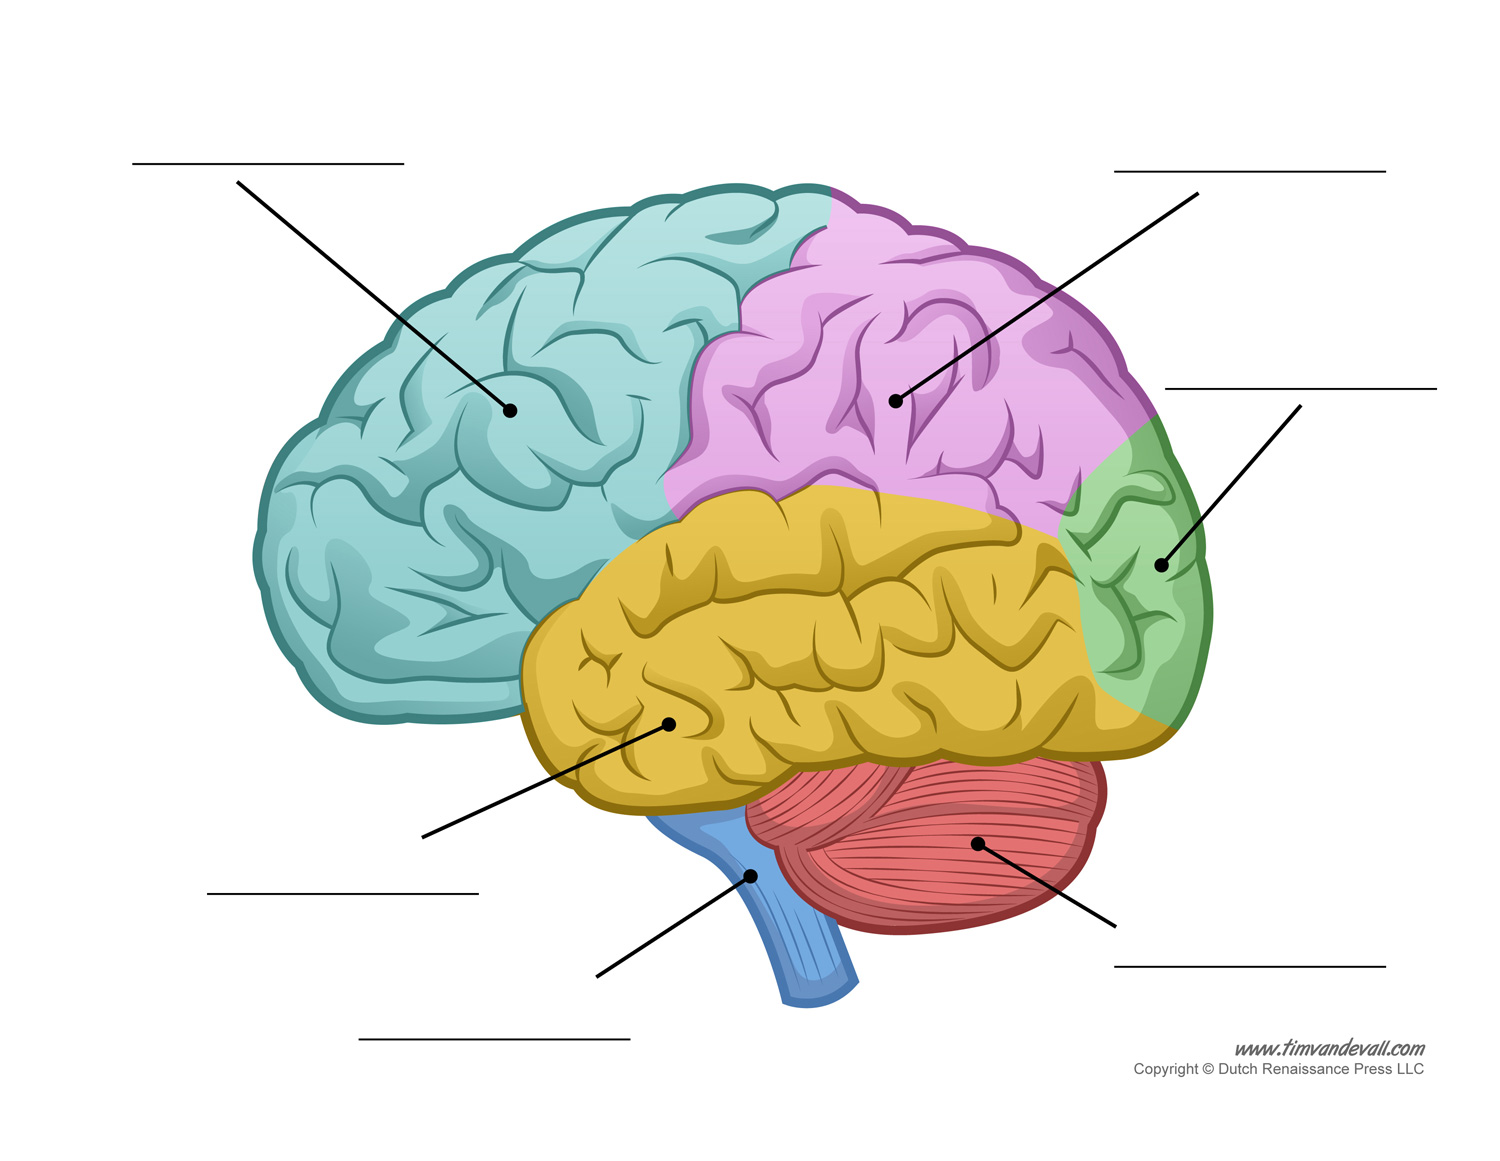 Human Brain Diagram - Labeled, Unlabled, and Blank